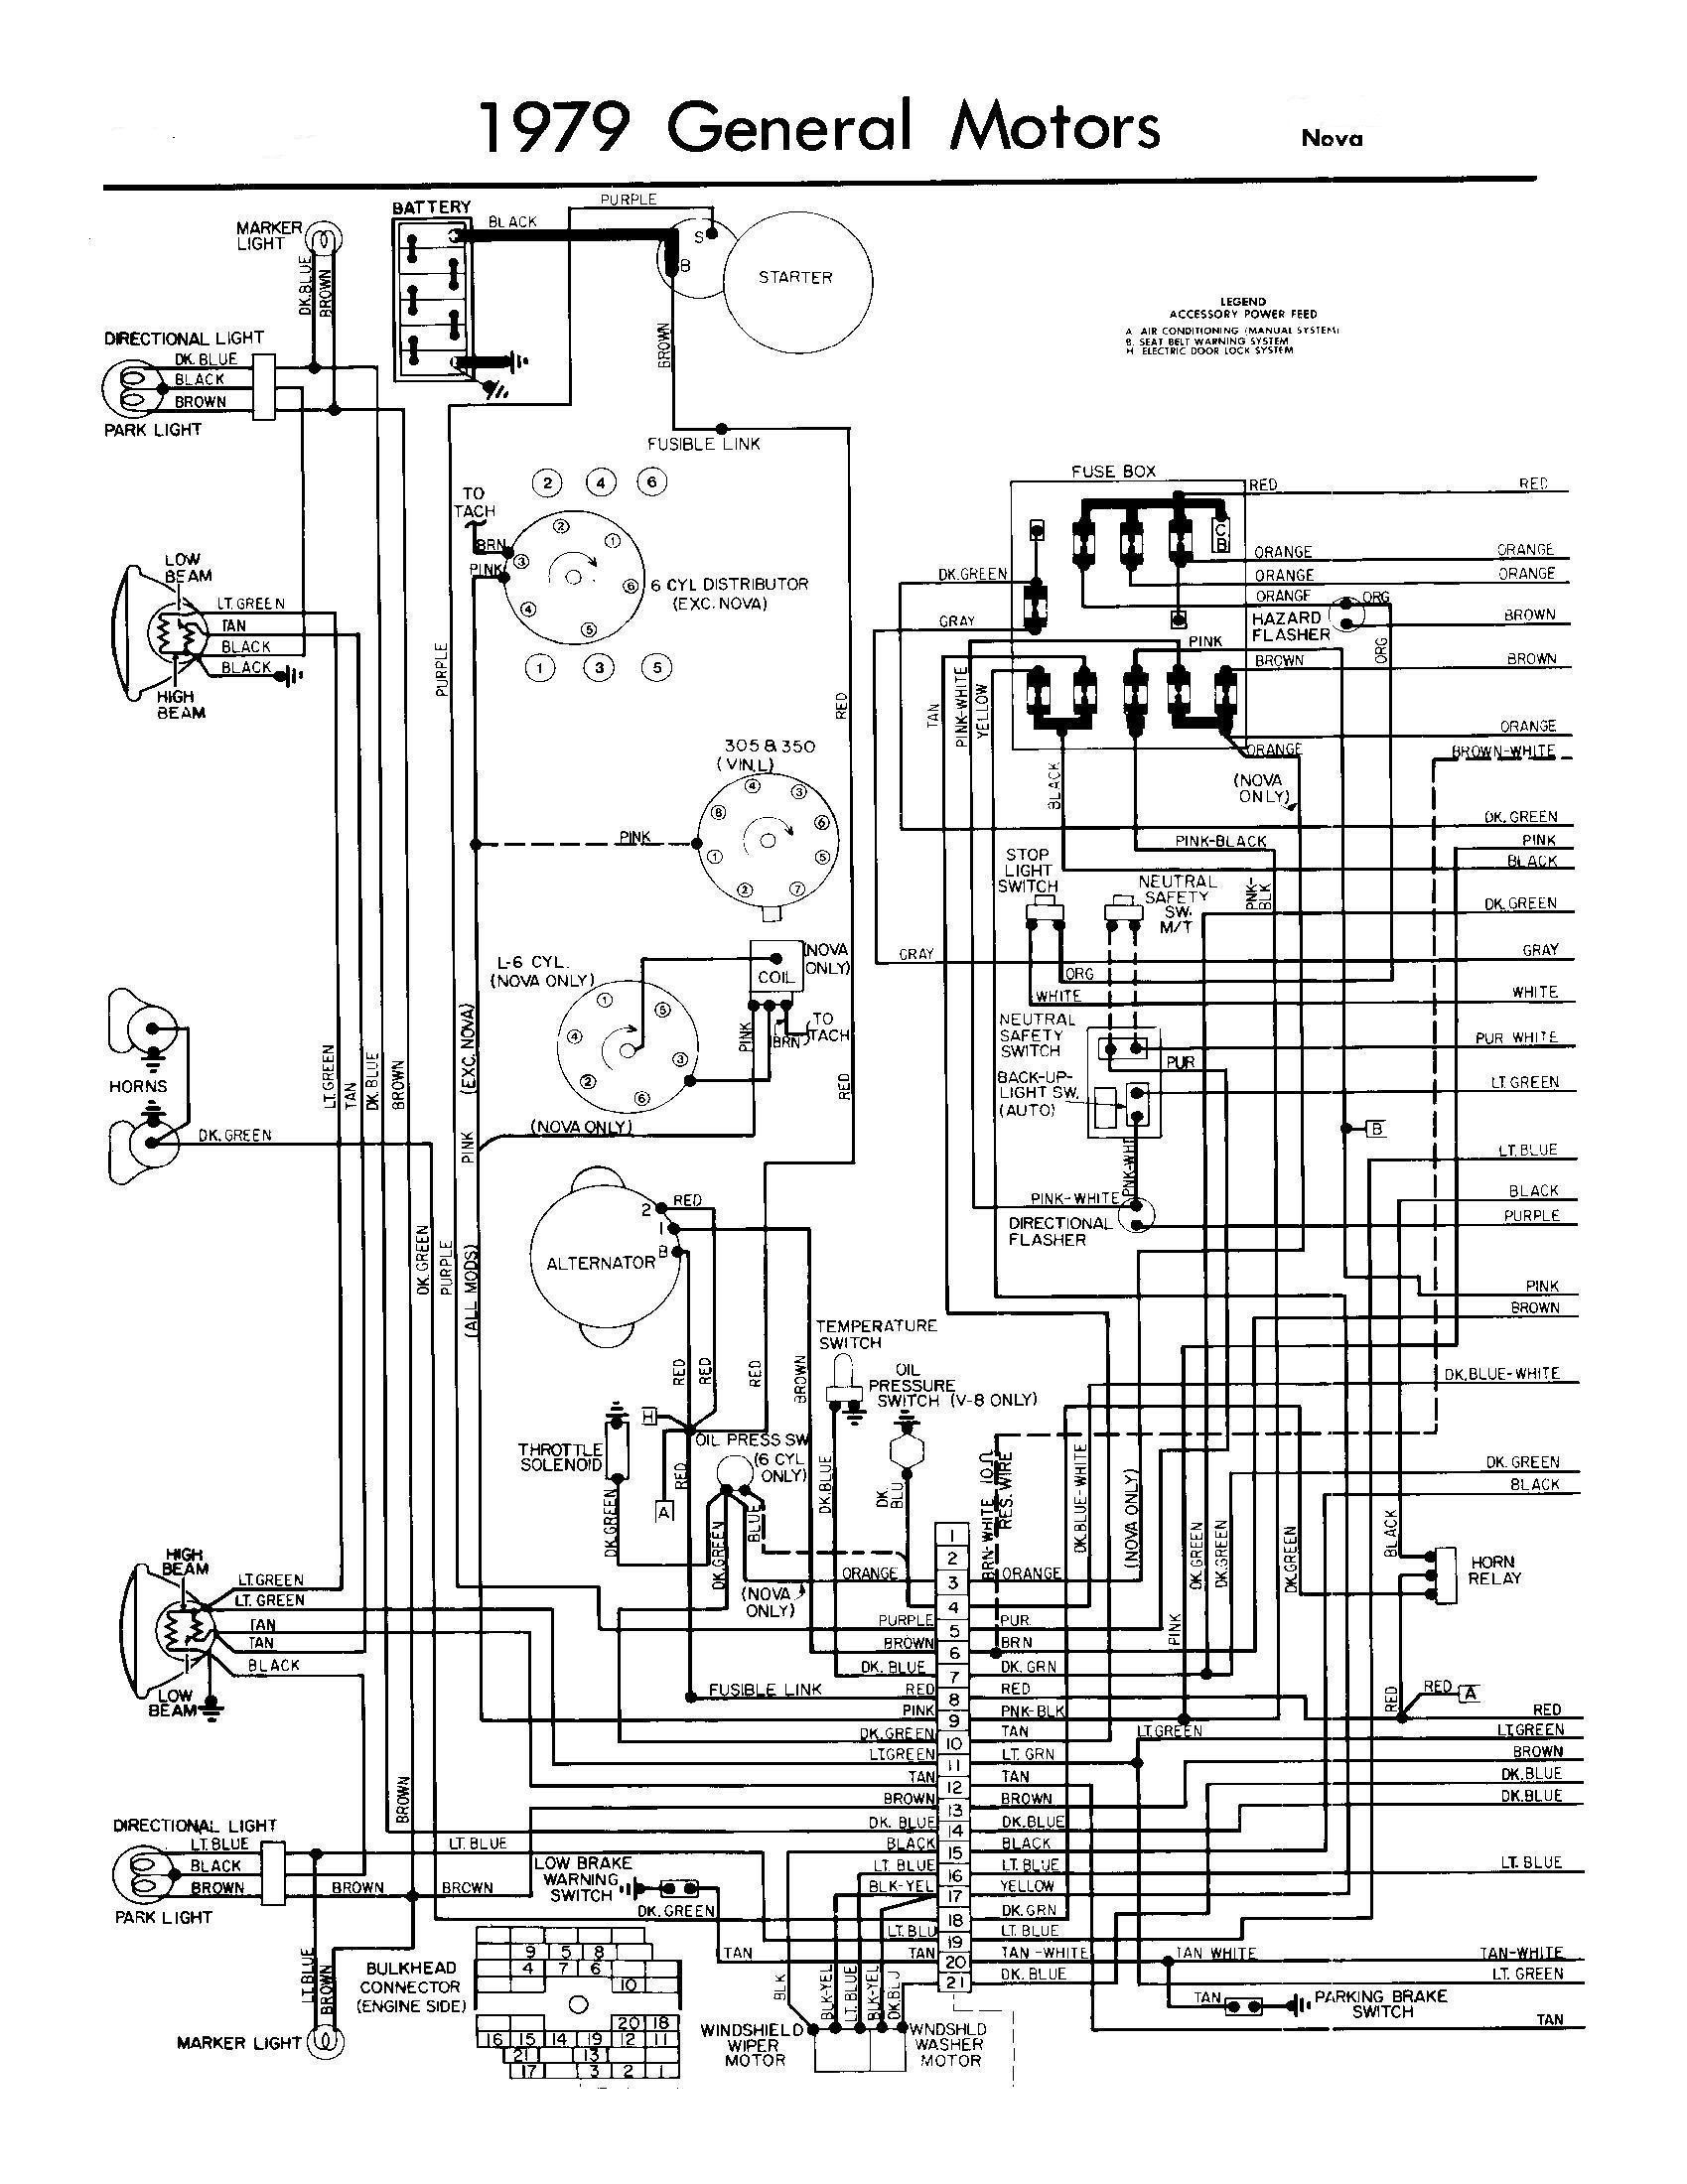 C30 Truck Wiring Diagram For 85 - basic electrical wiring theory on